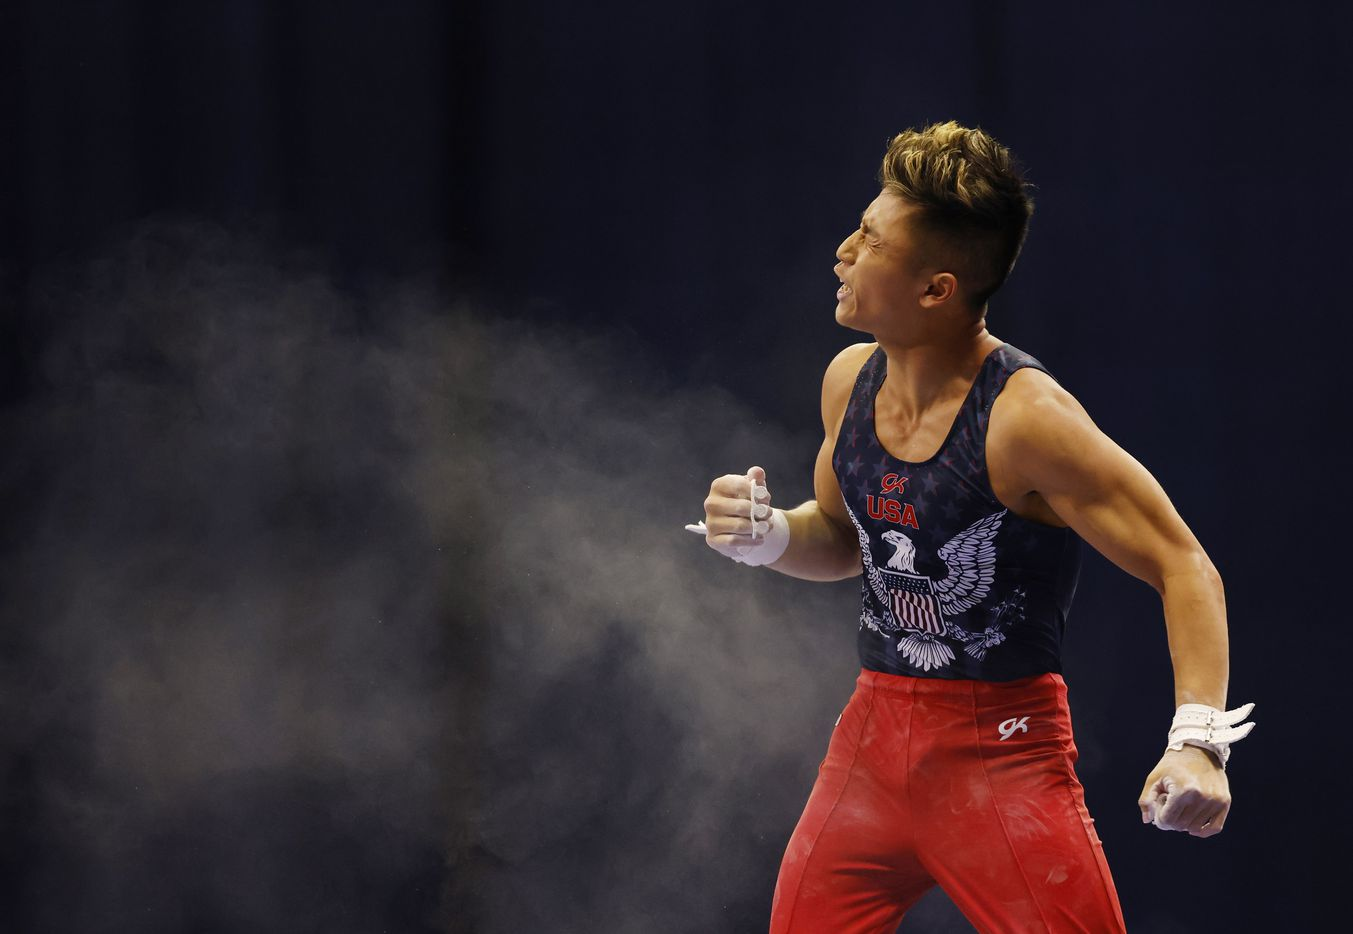 Yul Moldauer celebrates after competing in the high bar during day 2 of the men's 2021 U.S. Olympic Trials at America's Center on Saturday, June 26, 2021 in St Louis, Missouri.(Vernon Bryant/The Dallas Morning News)